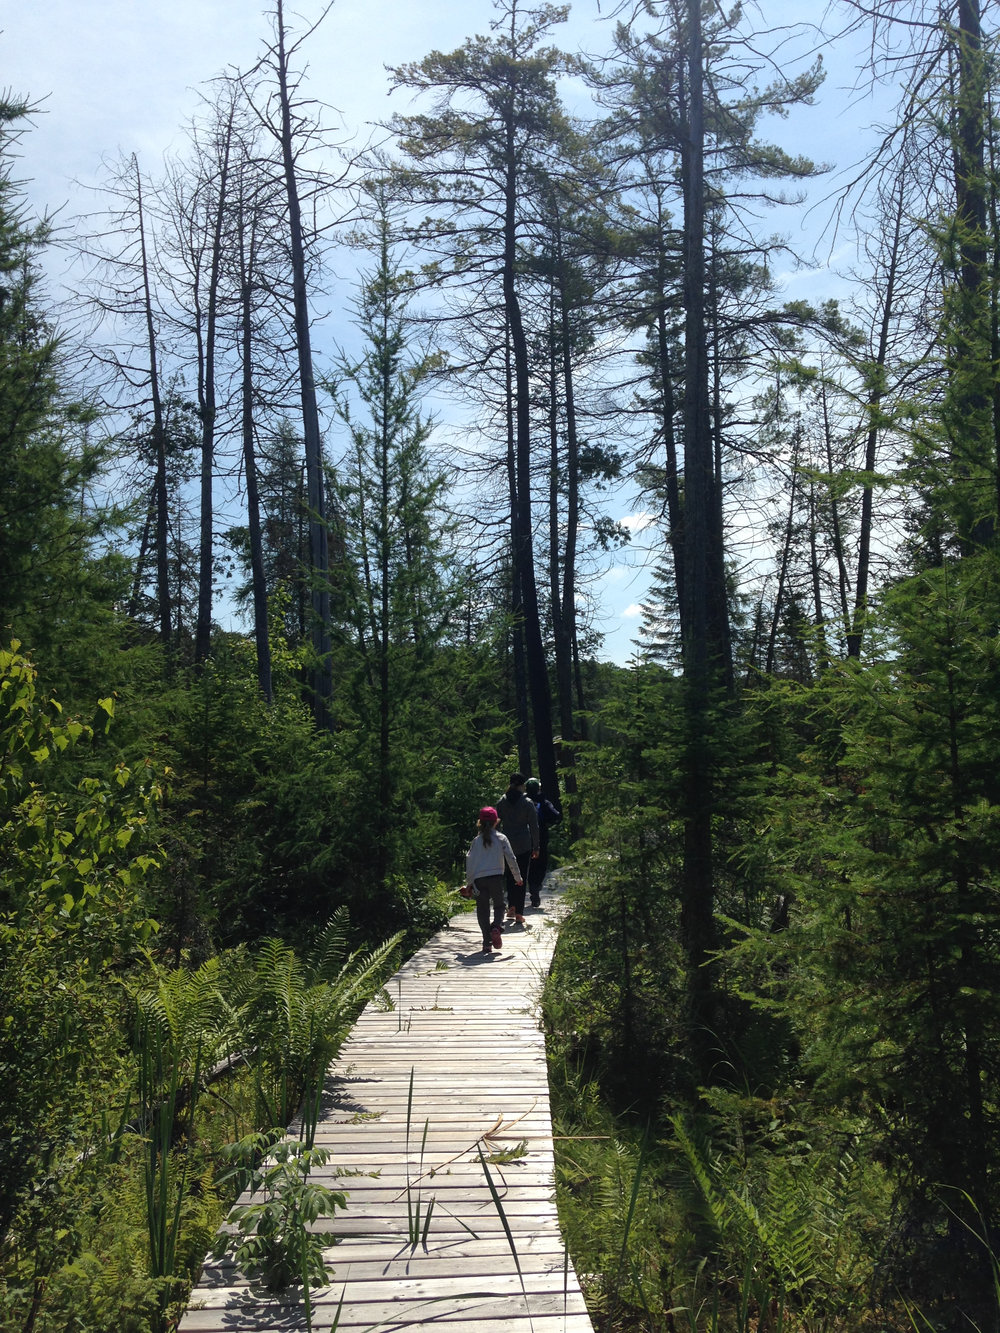 Enjoy a Leisurely Hike in the Heart of Nature